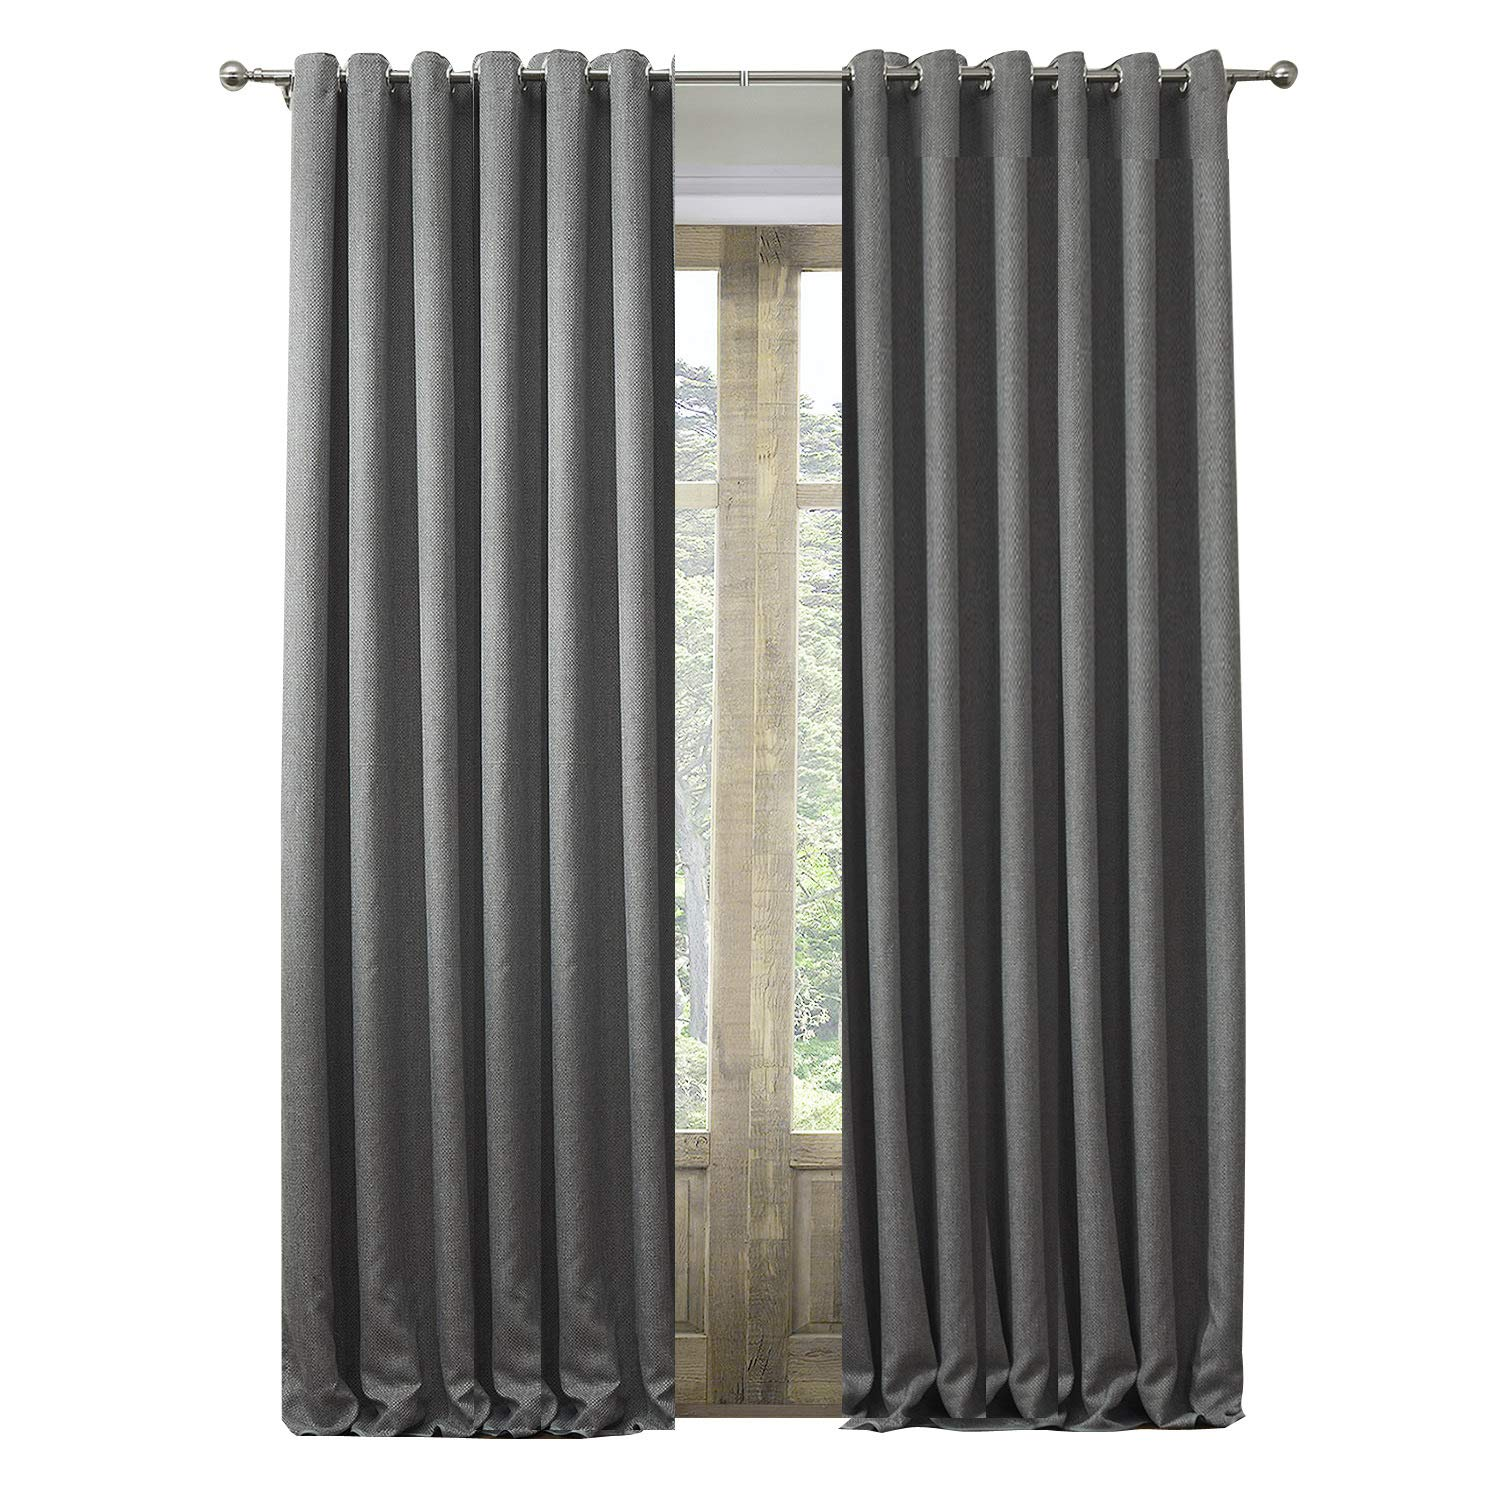 Artdix Blackout Curtains Panels Window Drapes - Grey 50W x 120L Inches (2 Panels) Grommet Top Insulated Thermal Solid Faux Linen Fabric Curtains for Bedroom, Living Room, Kids Room, Kitchen